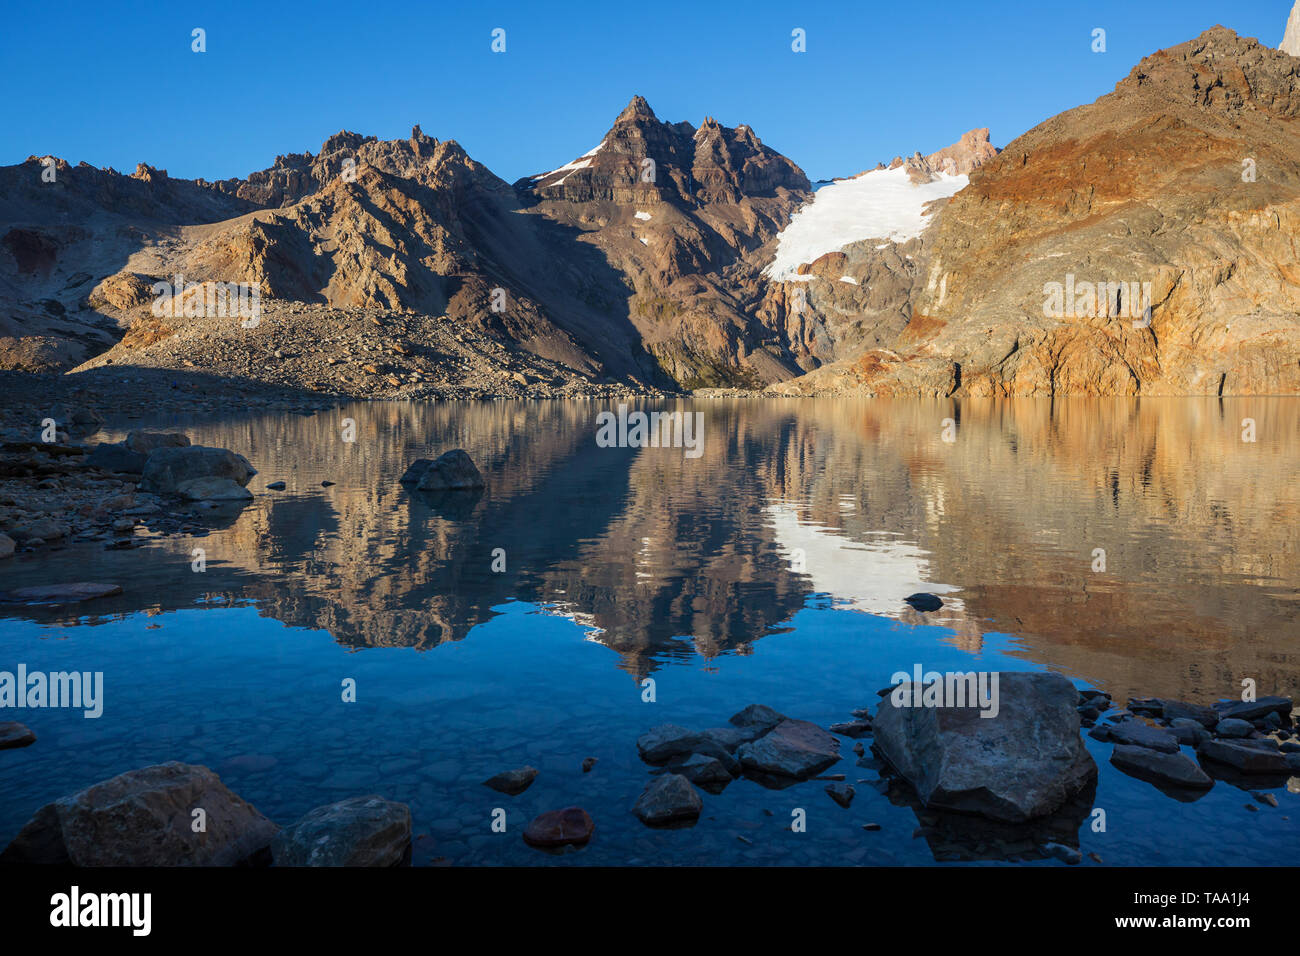 Beautiful mountain landscapes in Patagonia. Mountains lake in Argentina, South America. - Stock Image